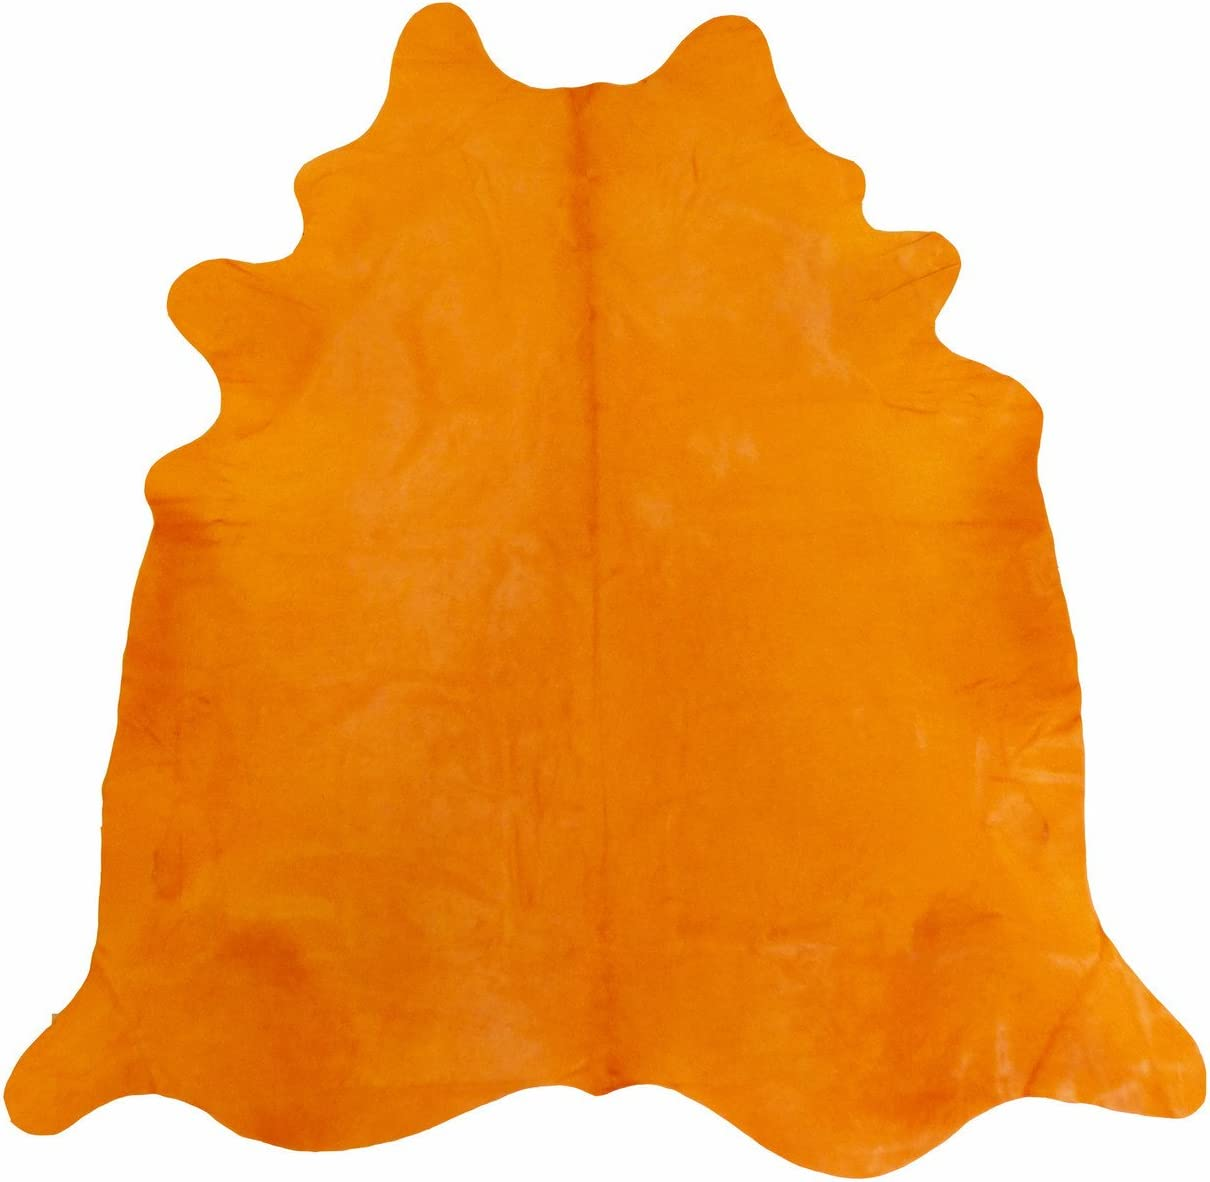 ecowhides Cowhide Rugs Color Dyed 7 ft x 7 ft Genuine Skin Leather Carpet - Area Rug for Home Office Orange